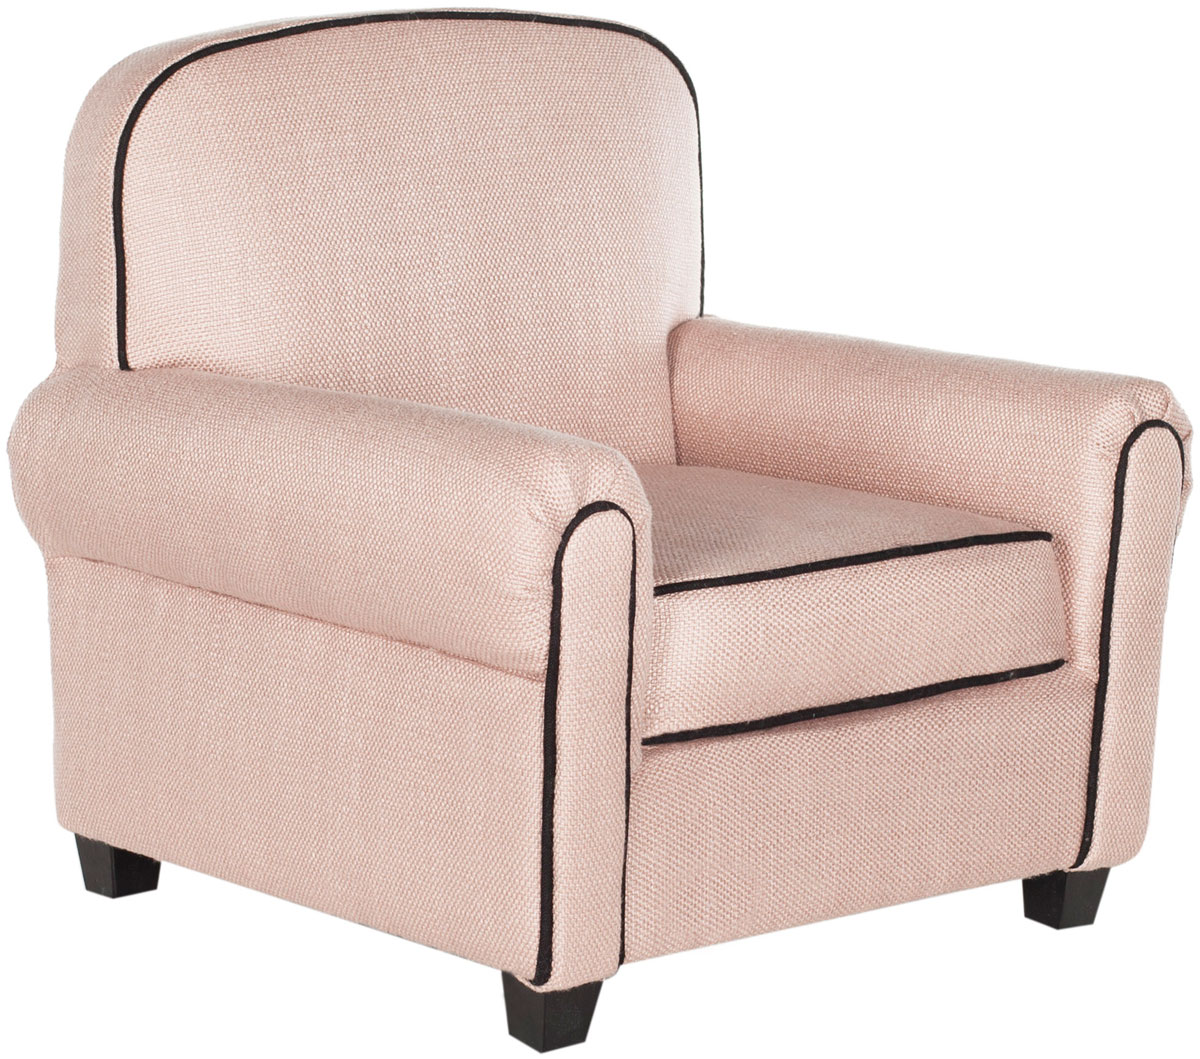 kids accent chair unusual sofas and chairs kid1001b kid 39s furniture by safavieh